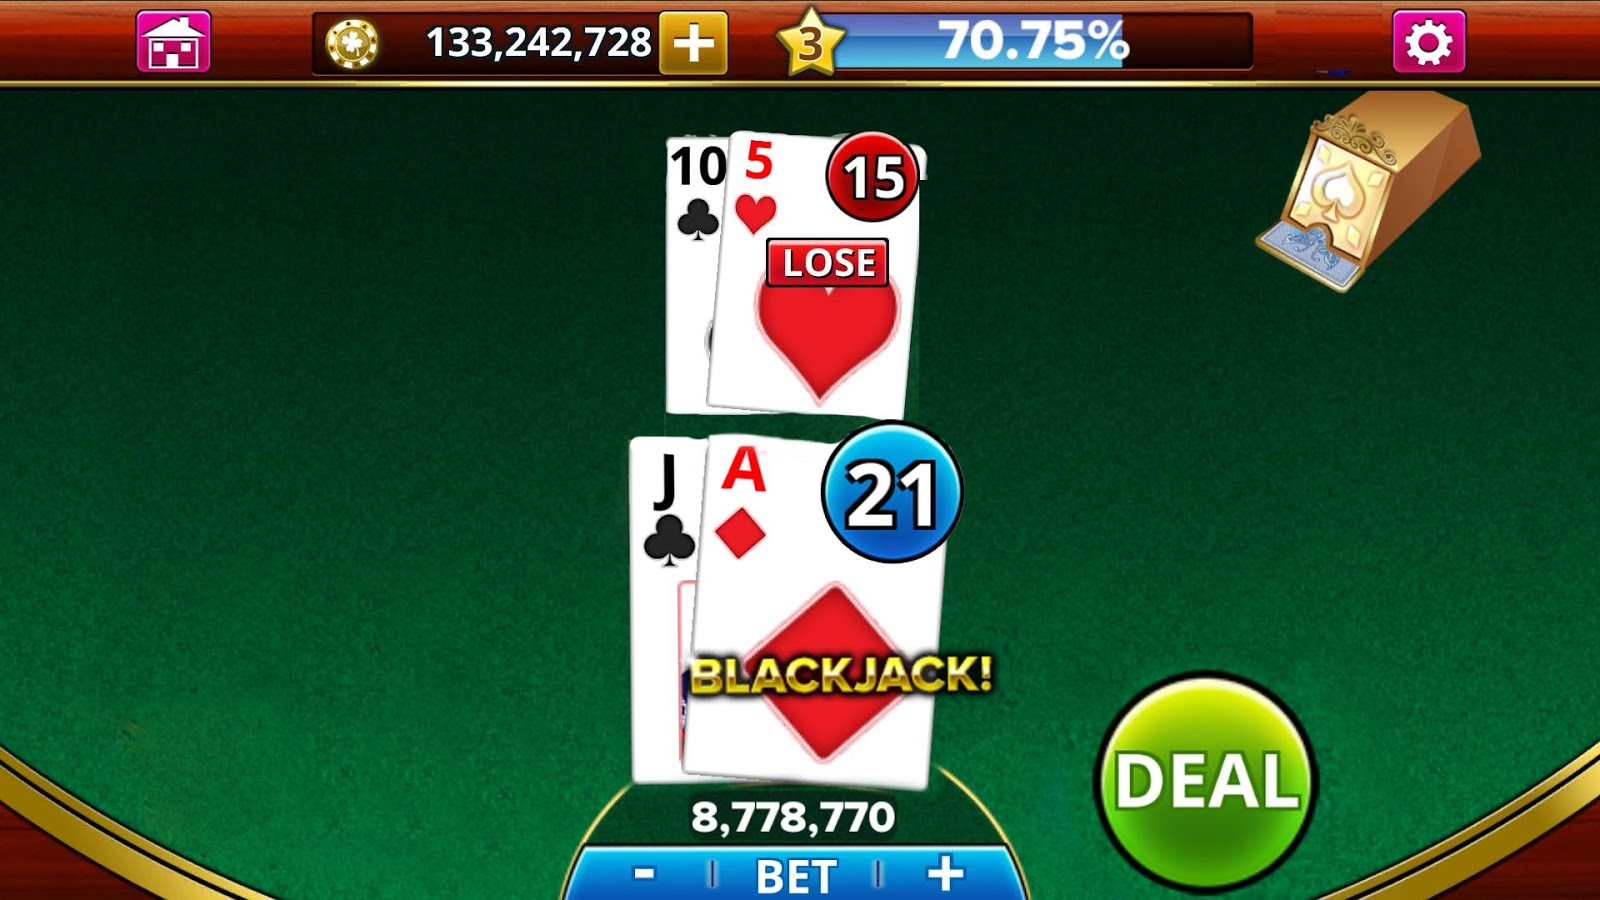 Real Money Android Blackjack Apps